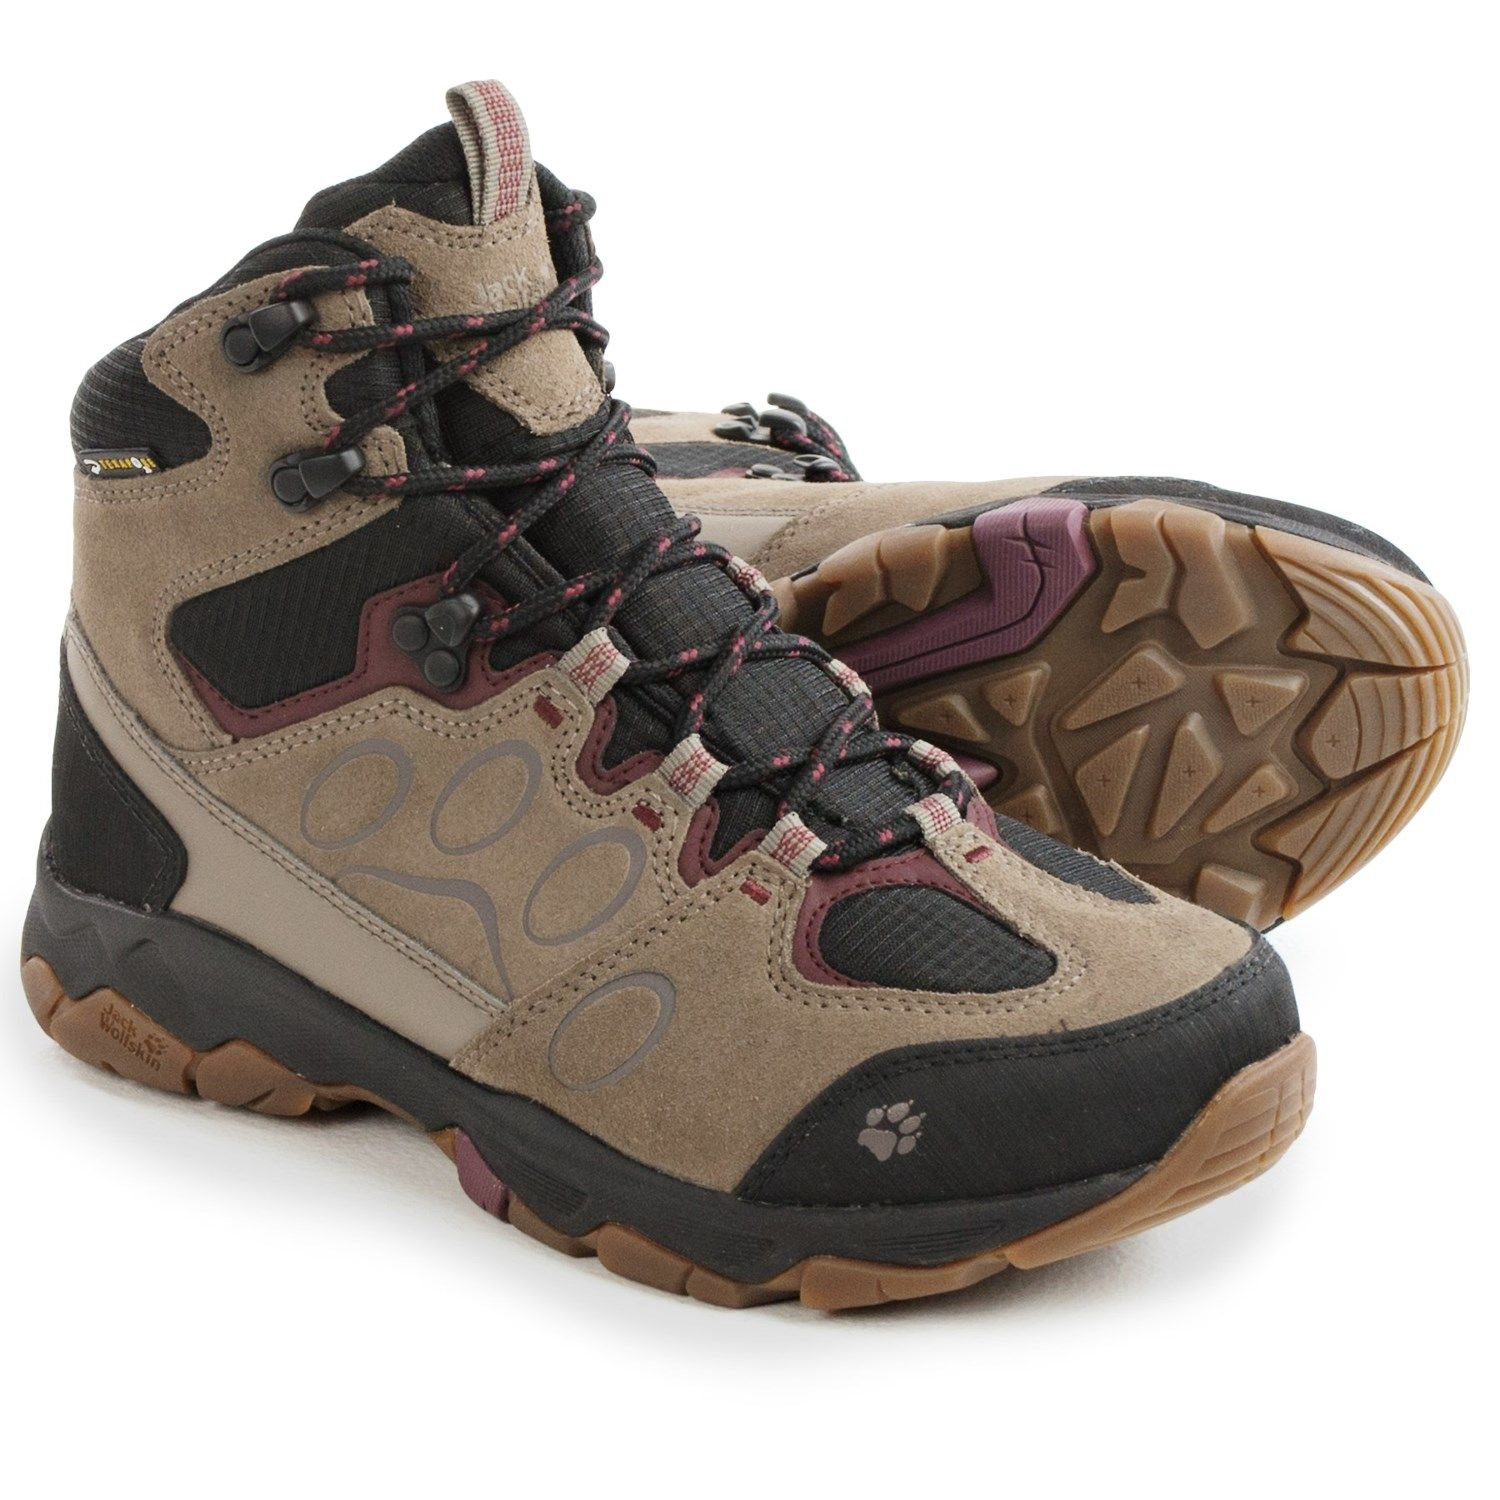 56a5e77fedf Jack Wolfskin MTN Attack 5 Texapore Mid Hiking Boots - Waterproof ...